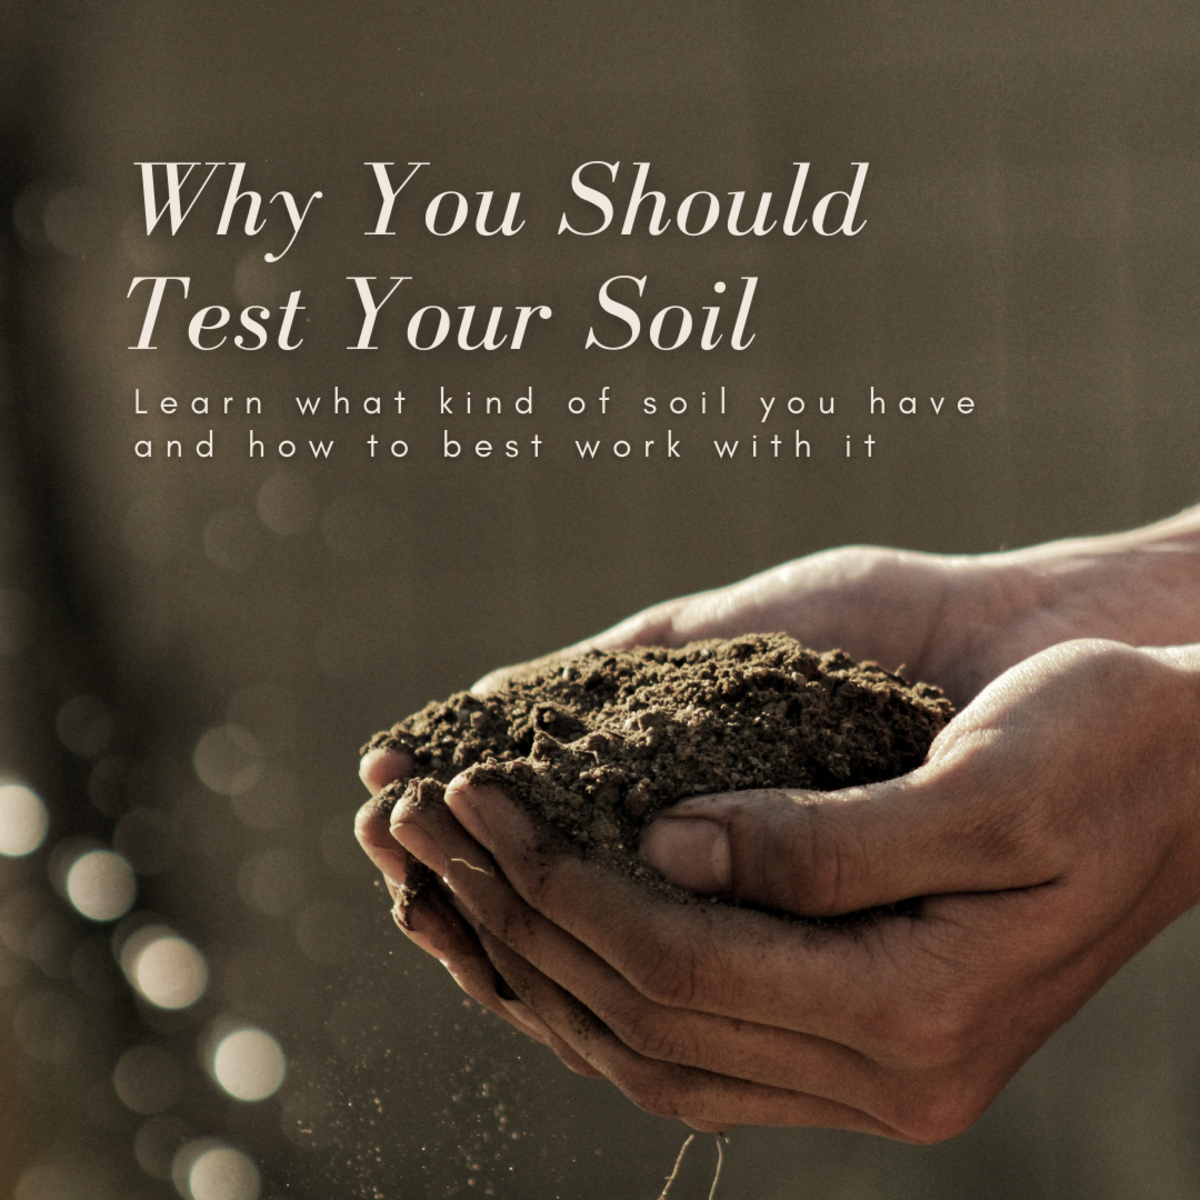 This article will break down why it's important to test your soil and provide information on how to improve its quality.